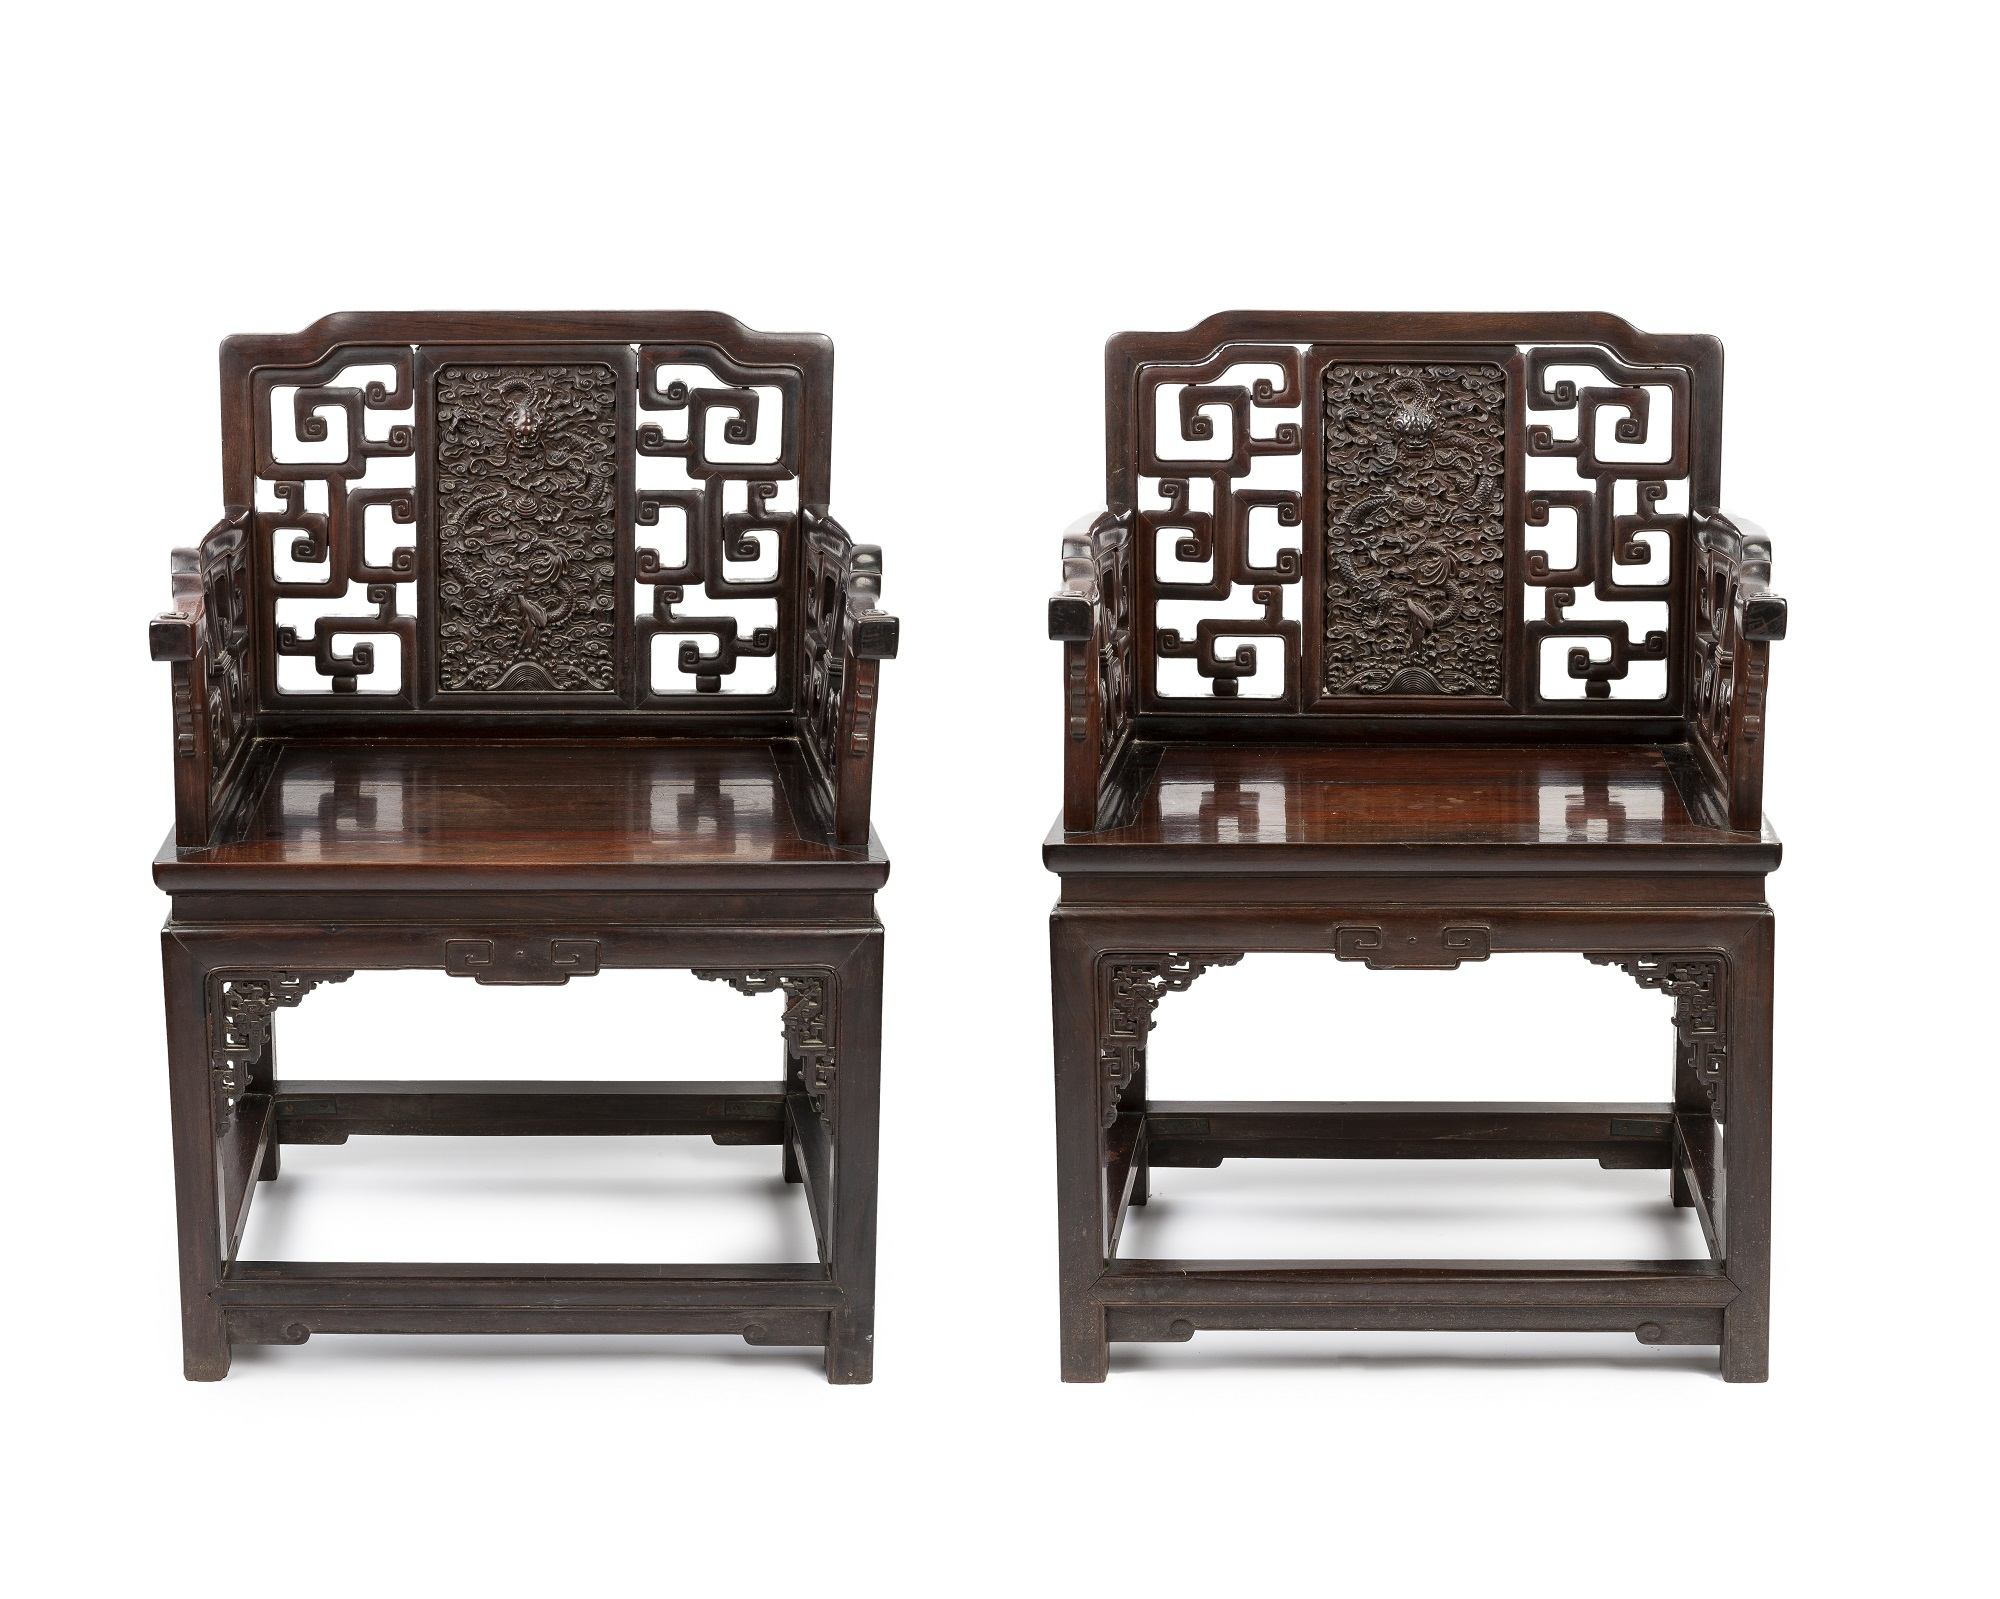 A pair of Chinese hardwood chairs sell for $375,000 at auction